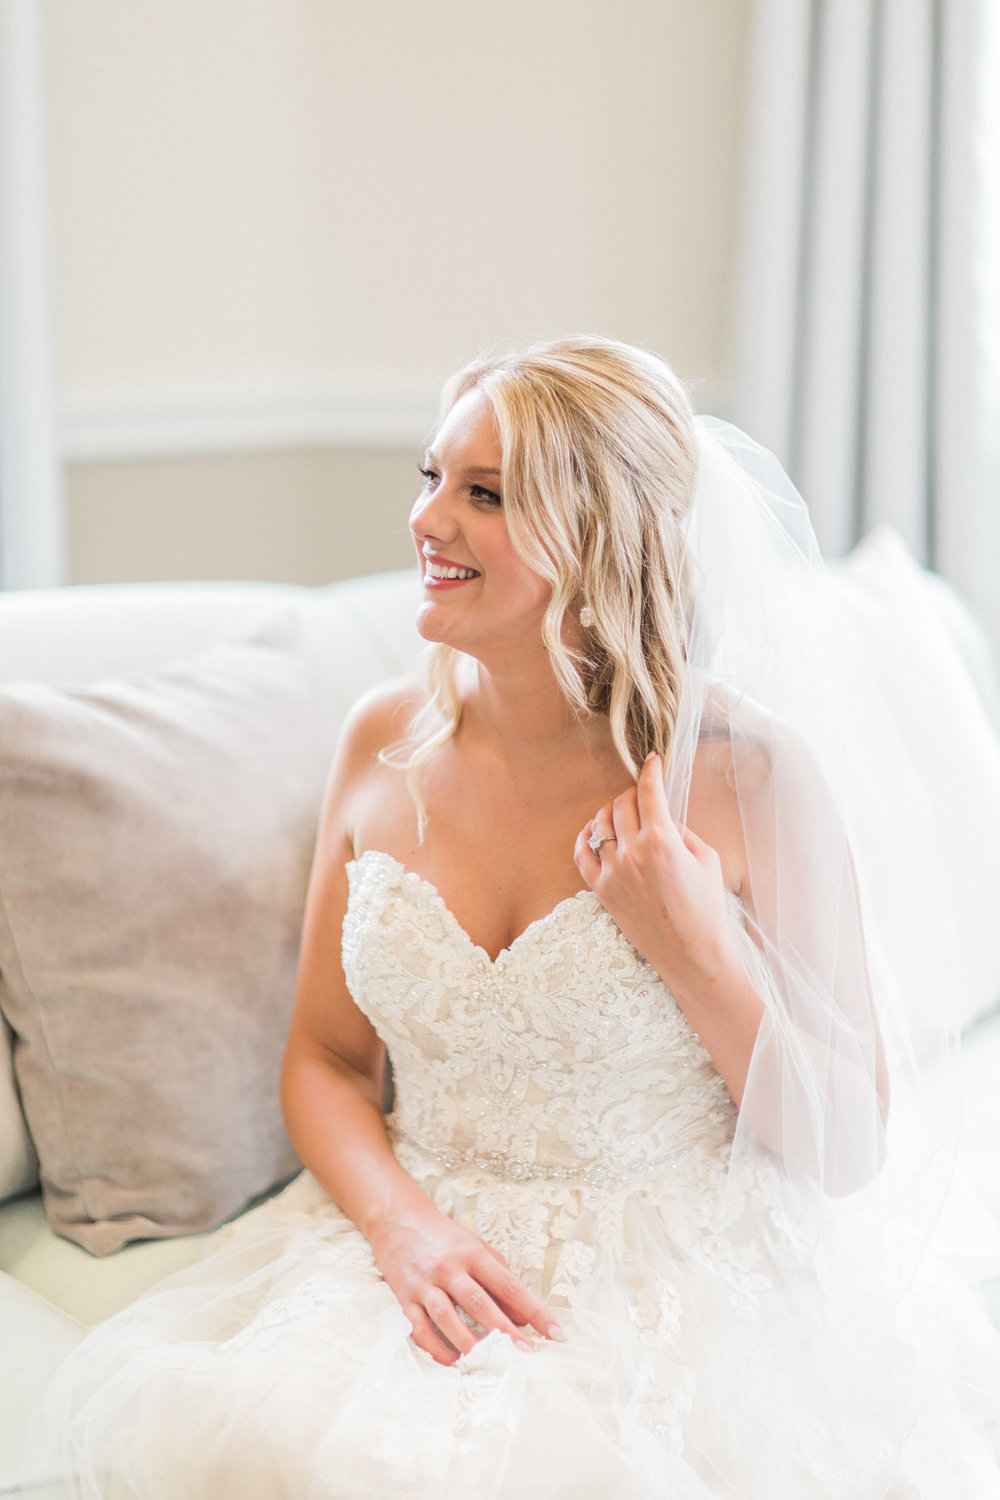 The Windsor Bridal Photos - Elegant Photography